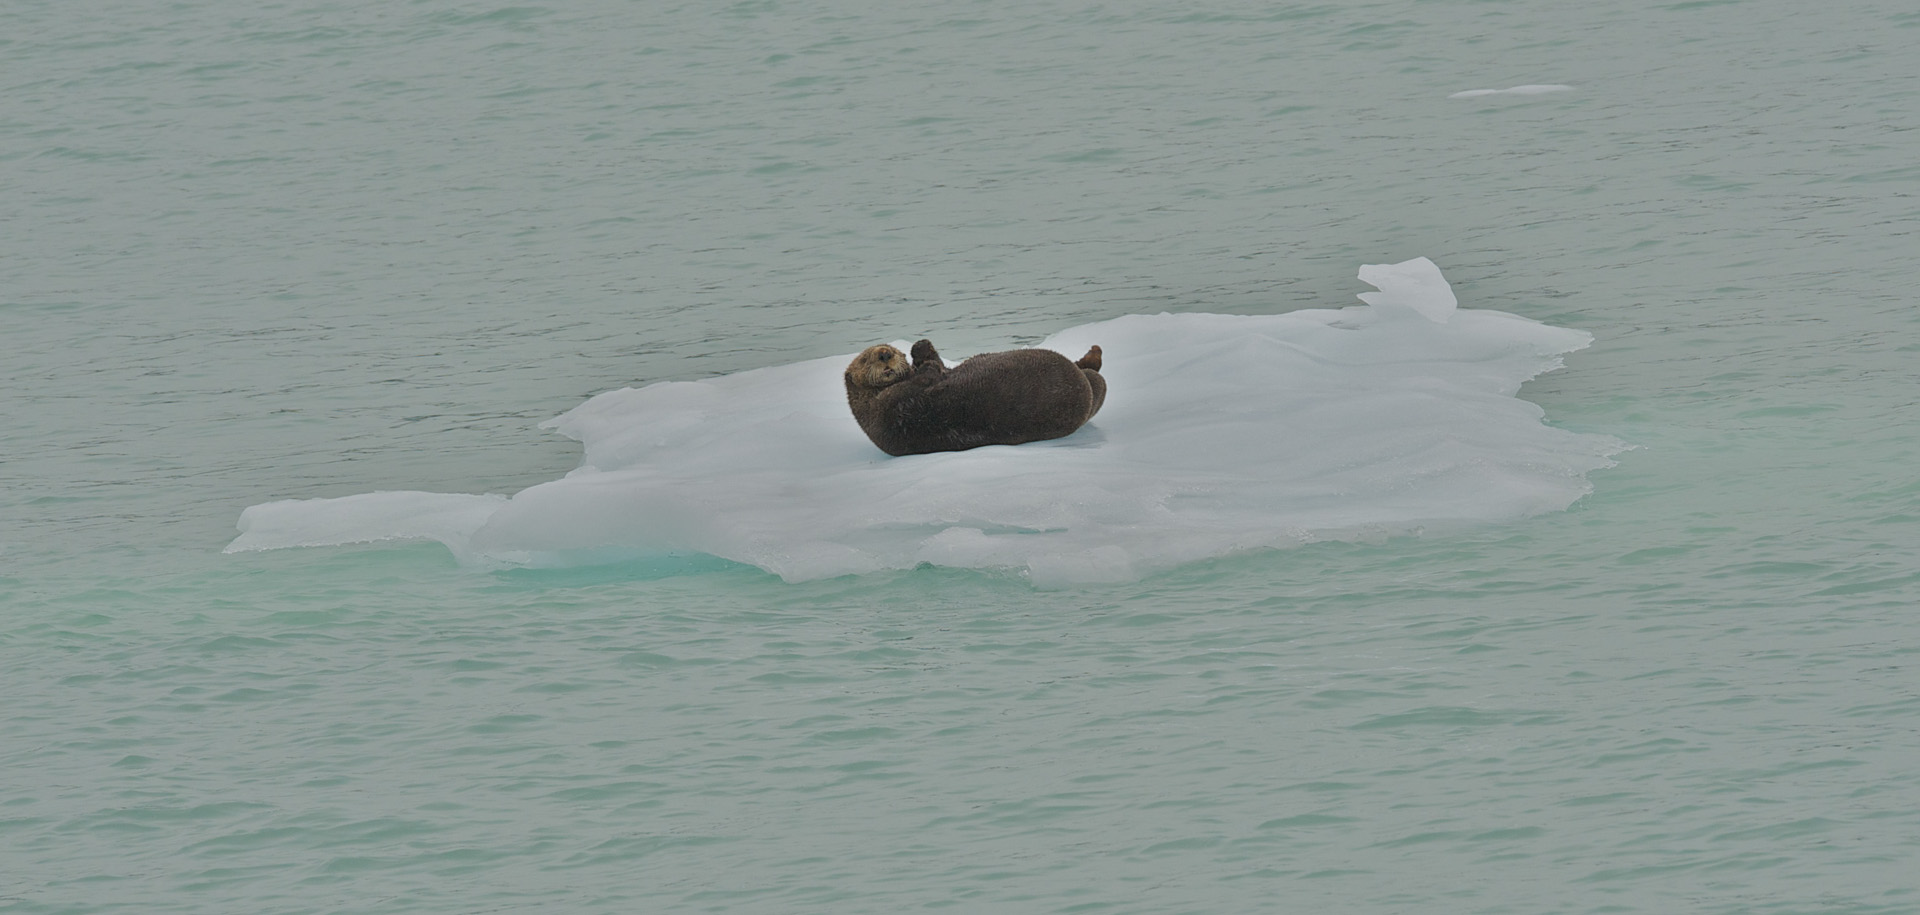 A sea otter on an ice berg.